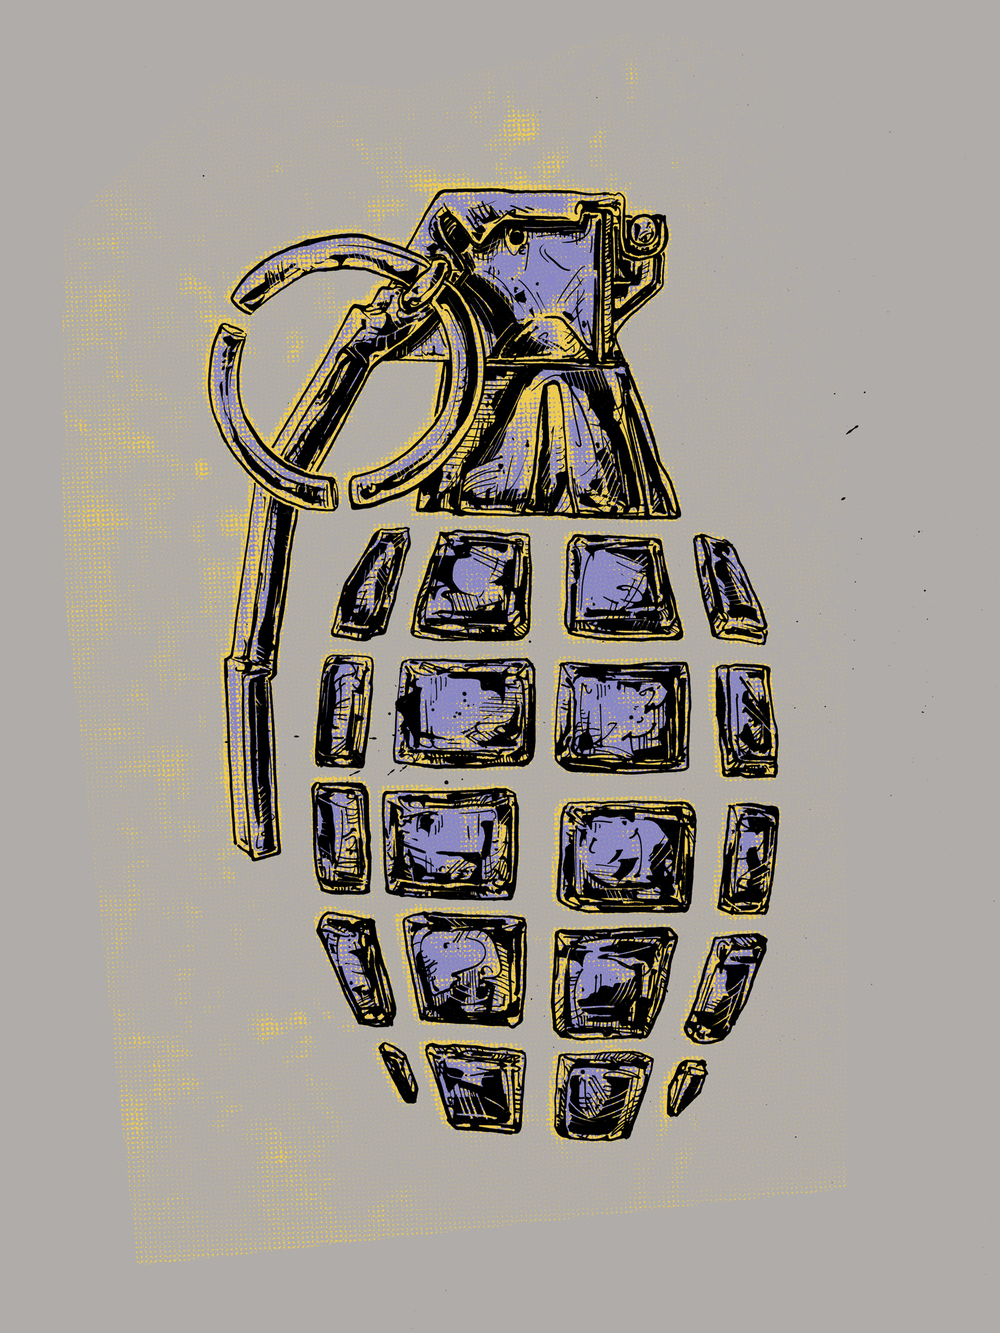 david_sheets_grenade_logo_ink.jpg